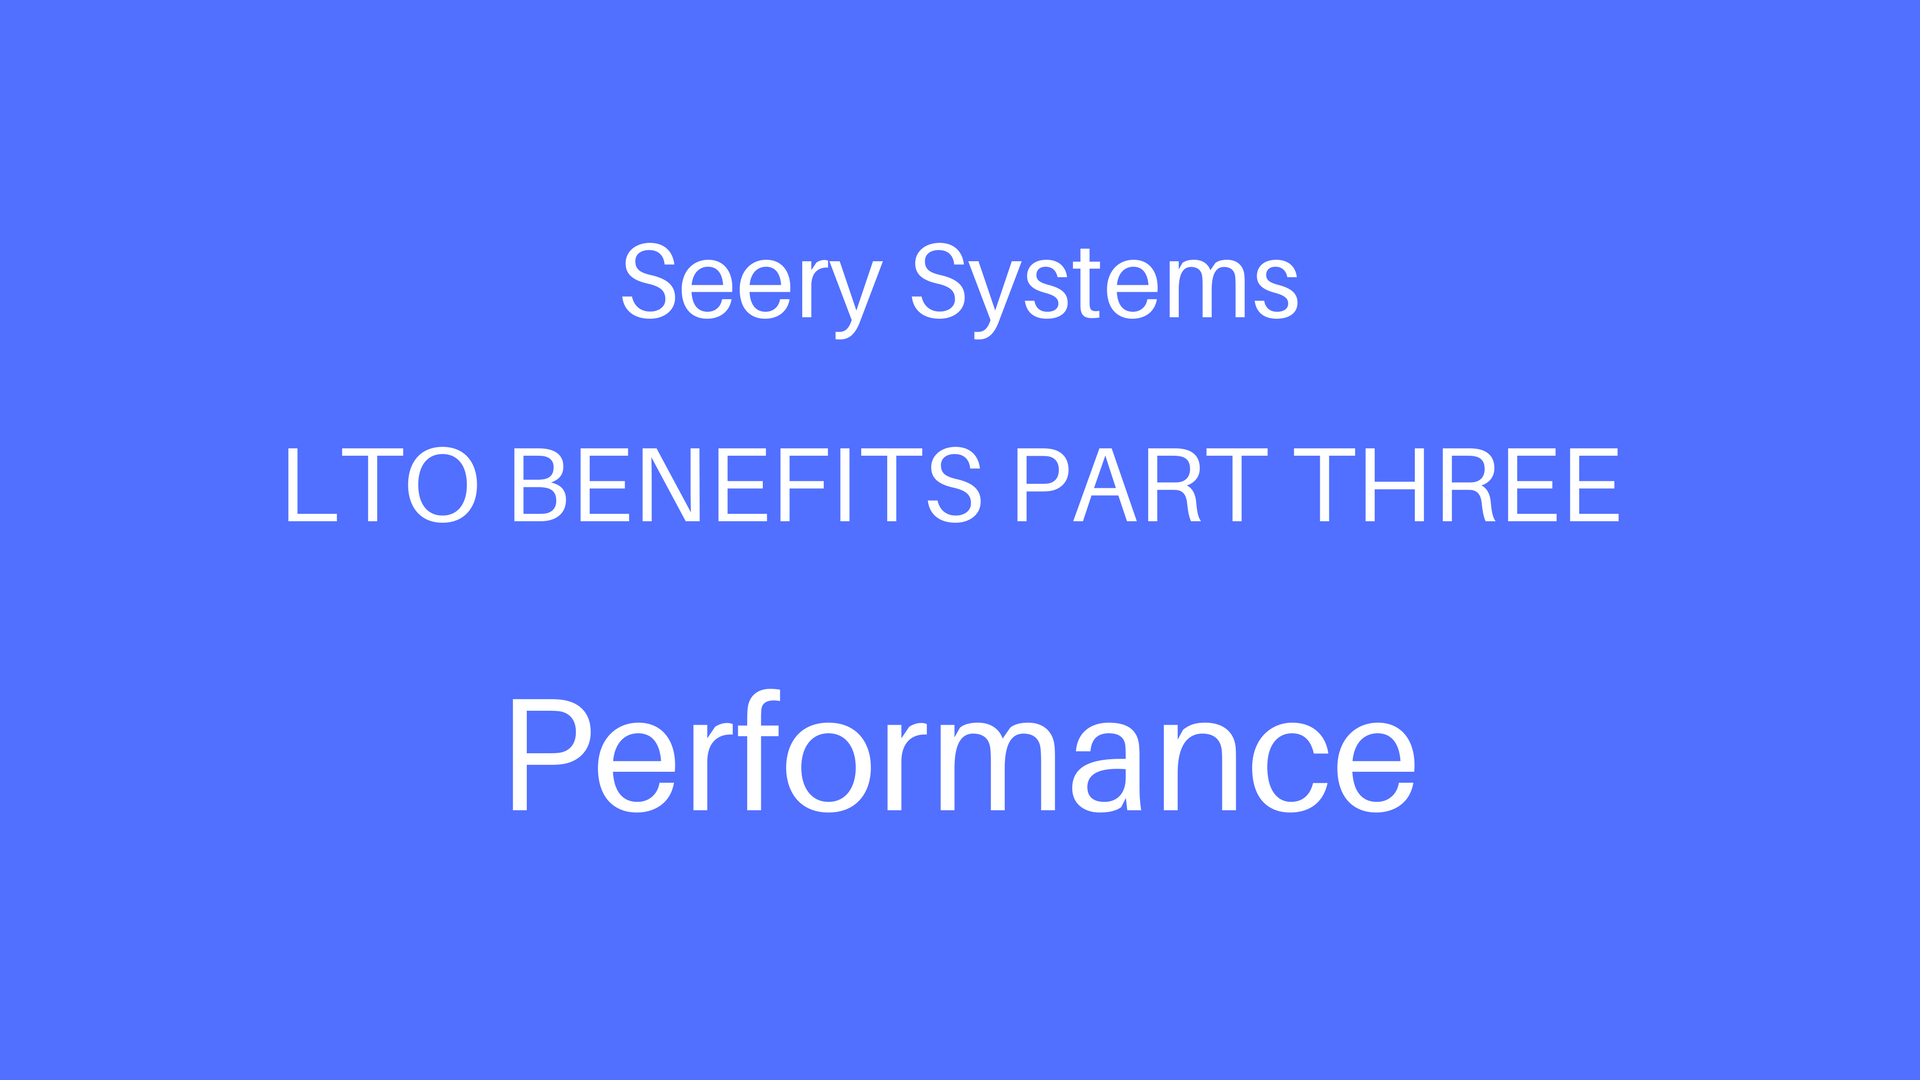 LTO Benefits Part 3 - Performance